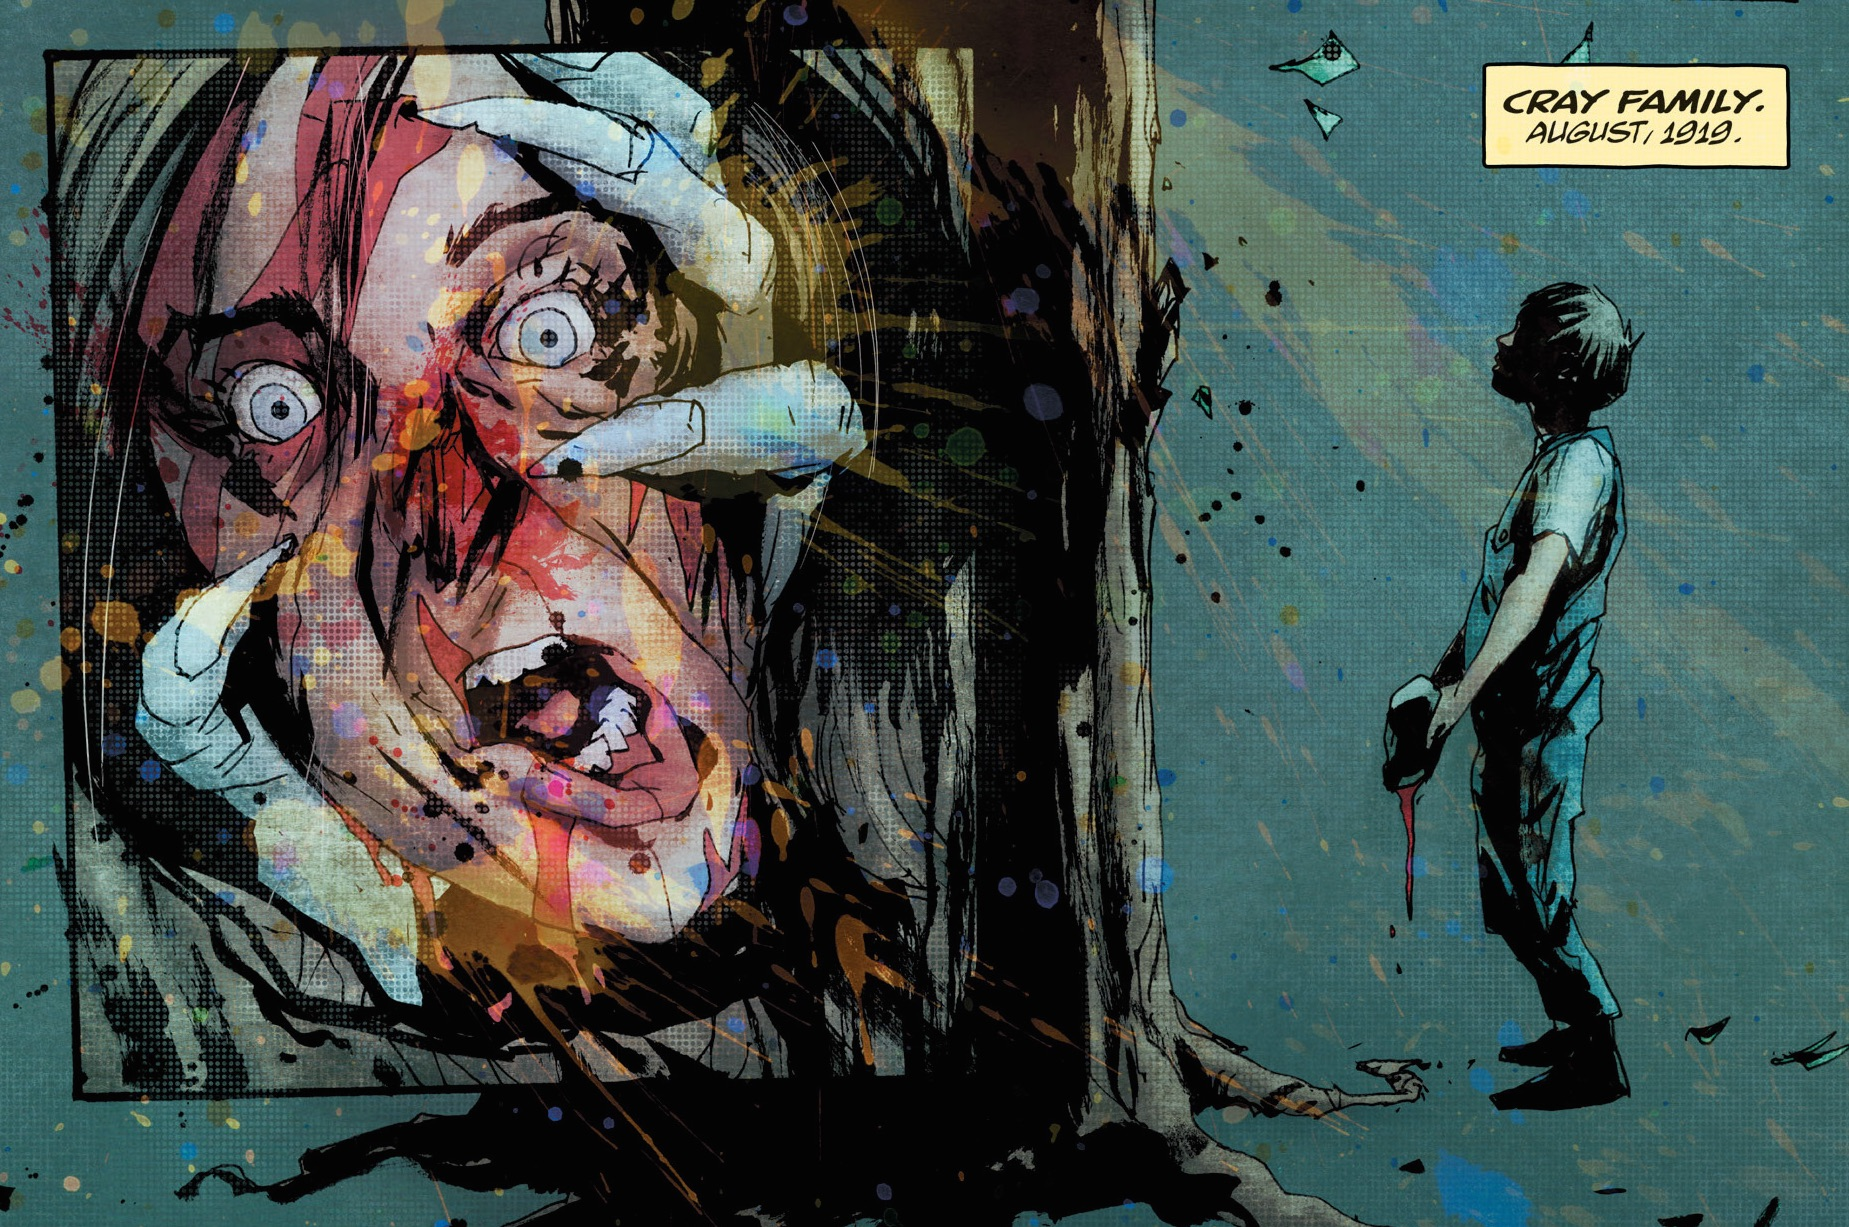 Bloody face being pulled by claw: boy standing in front of tree: Wytches